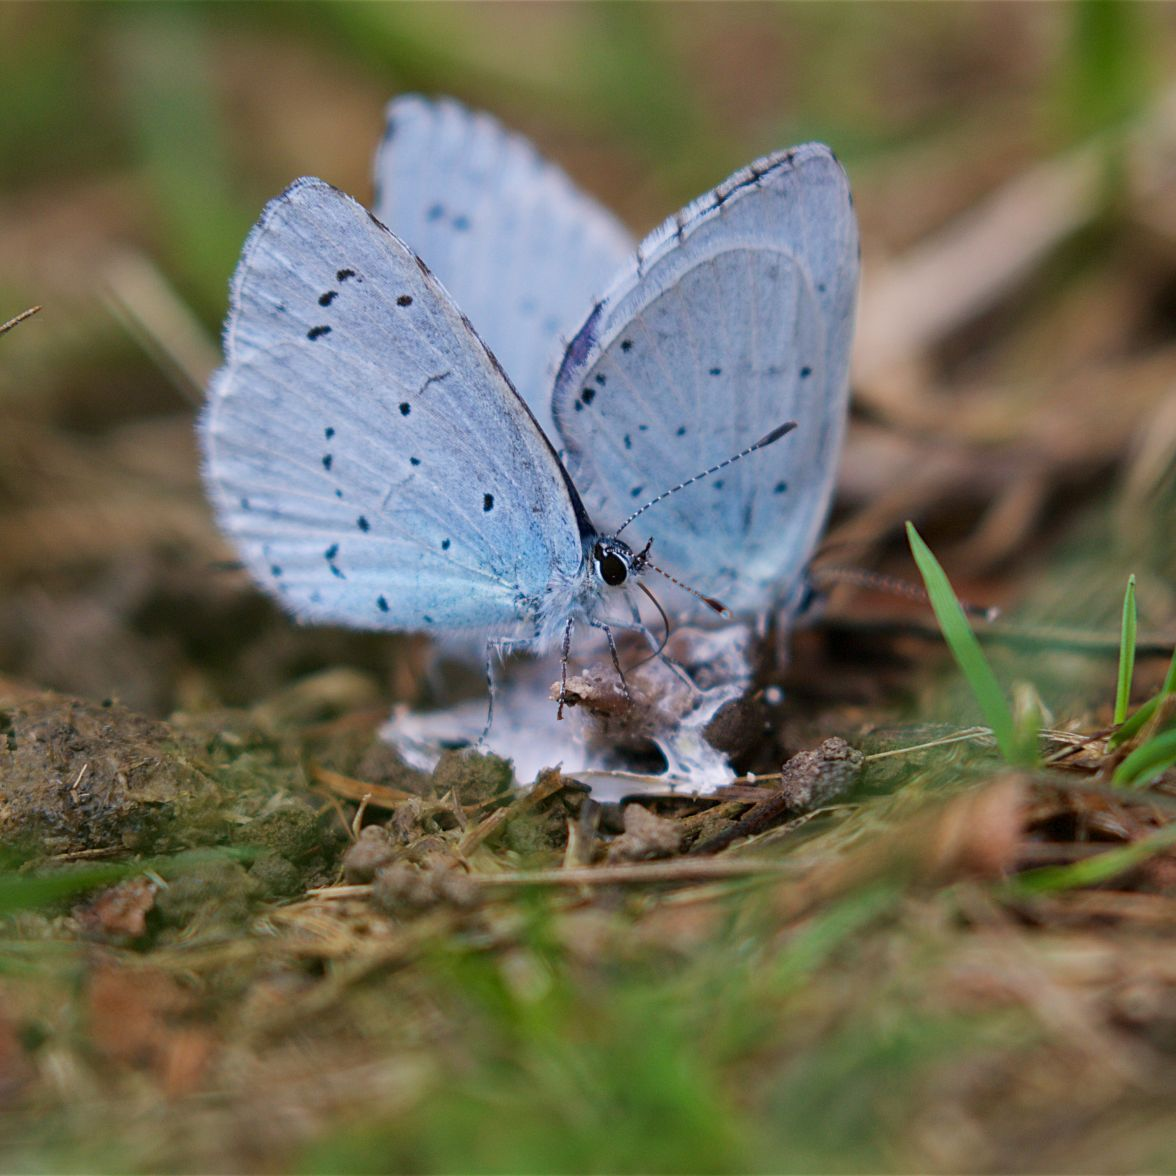 Three male holly blues on a bird dropping